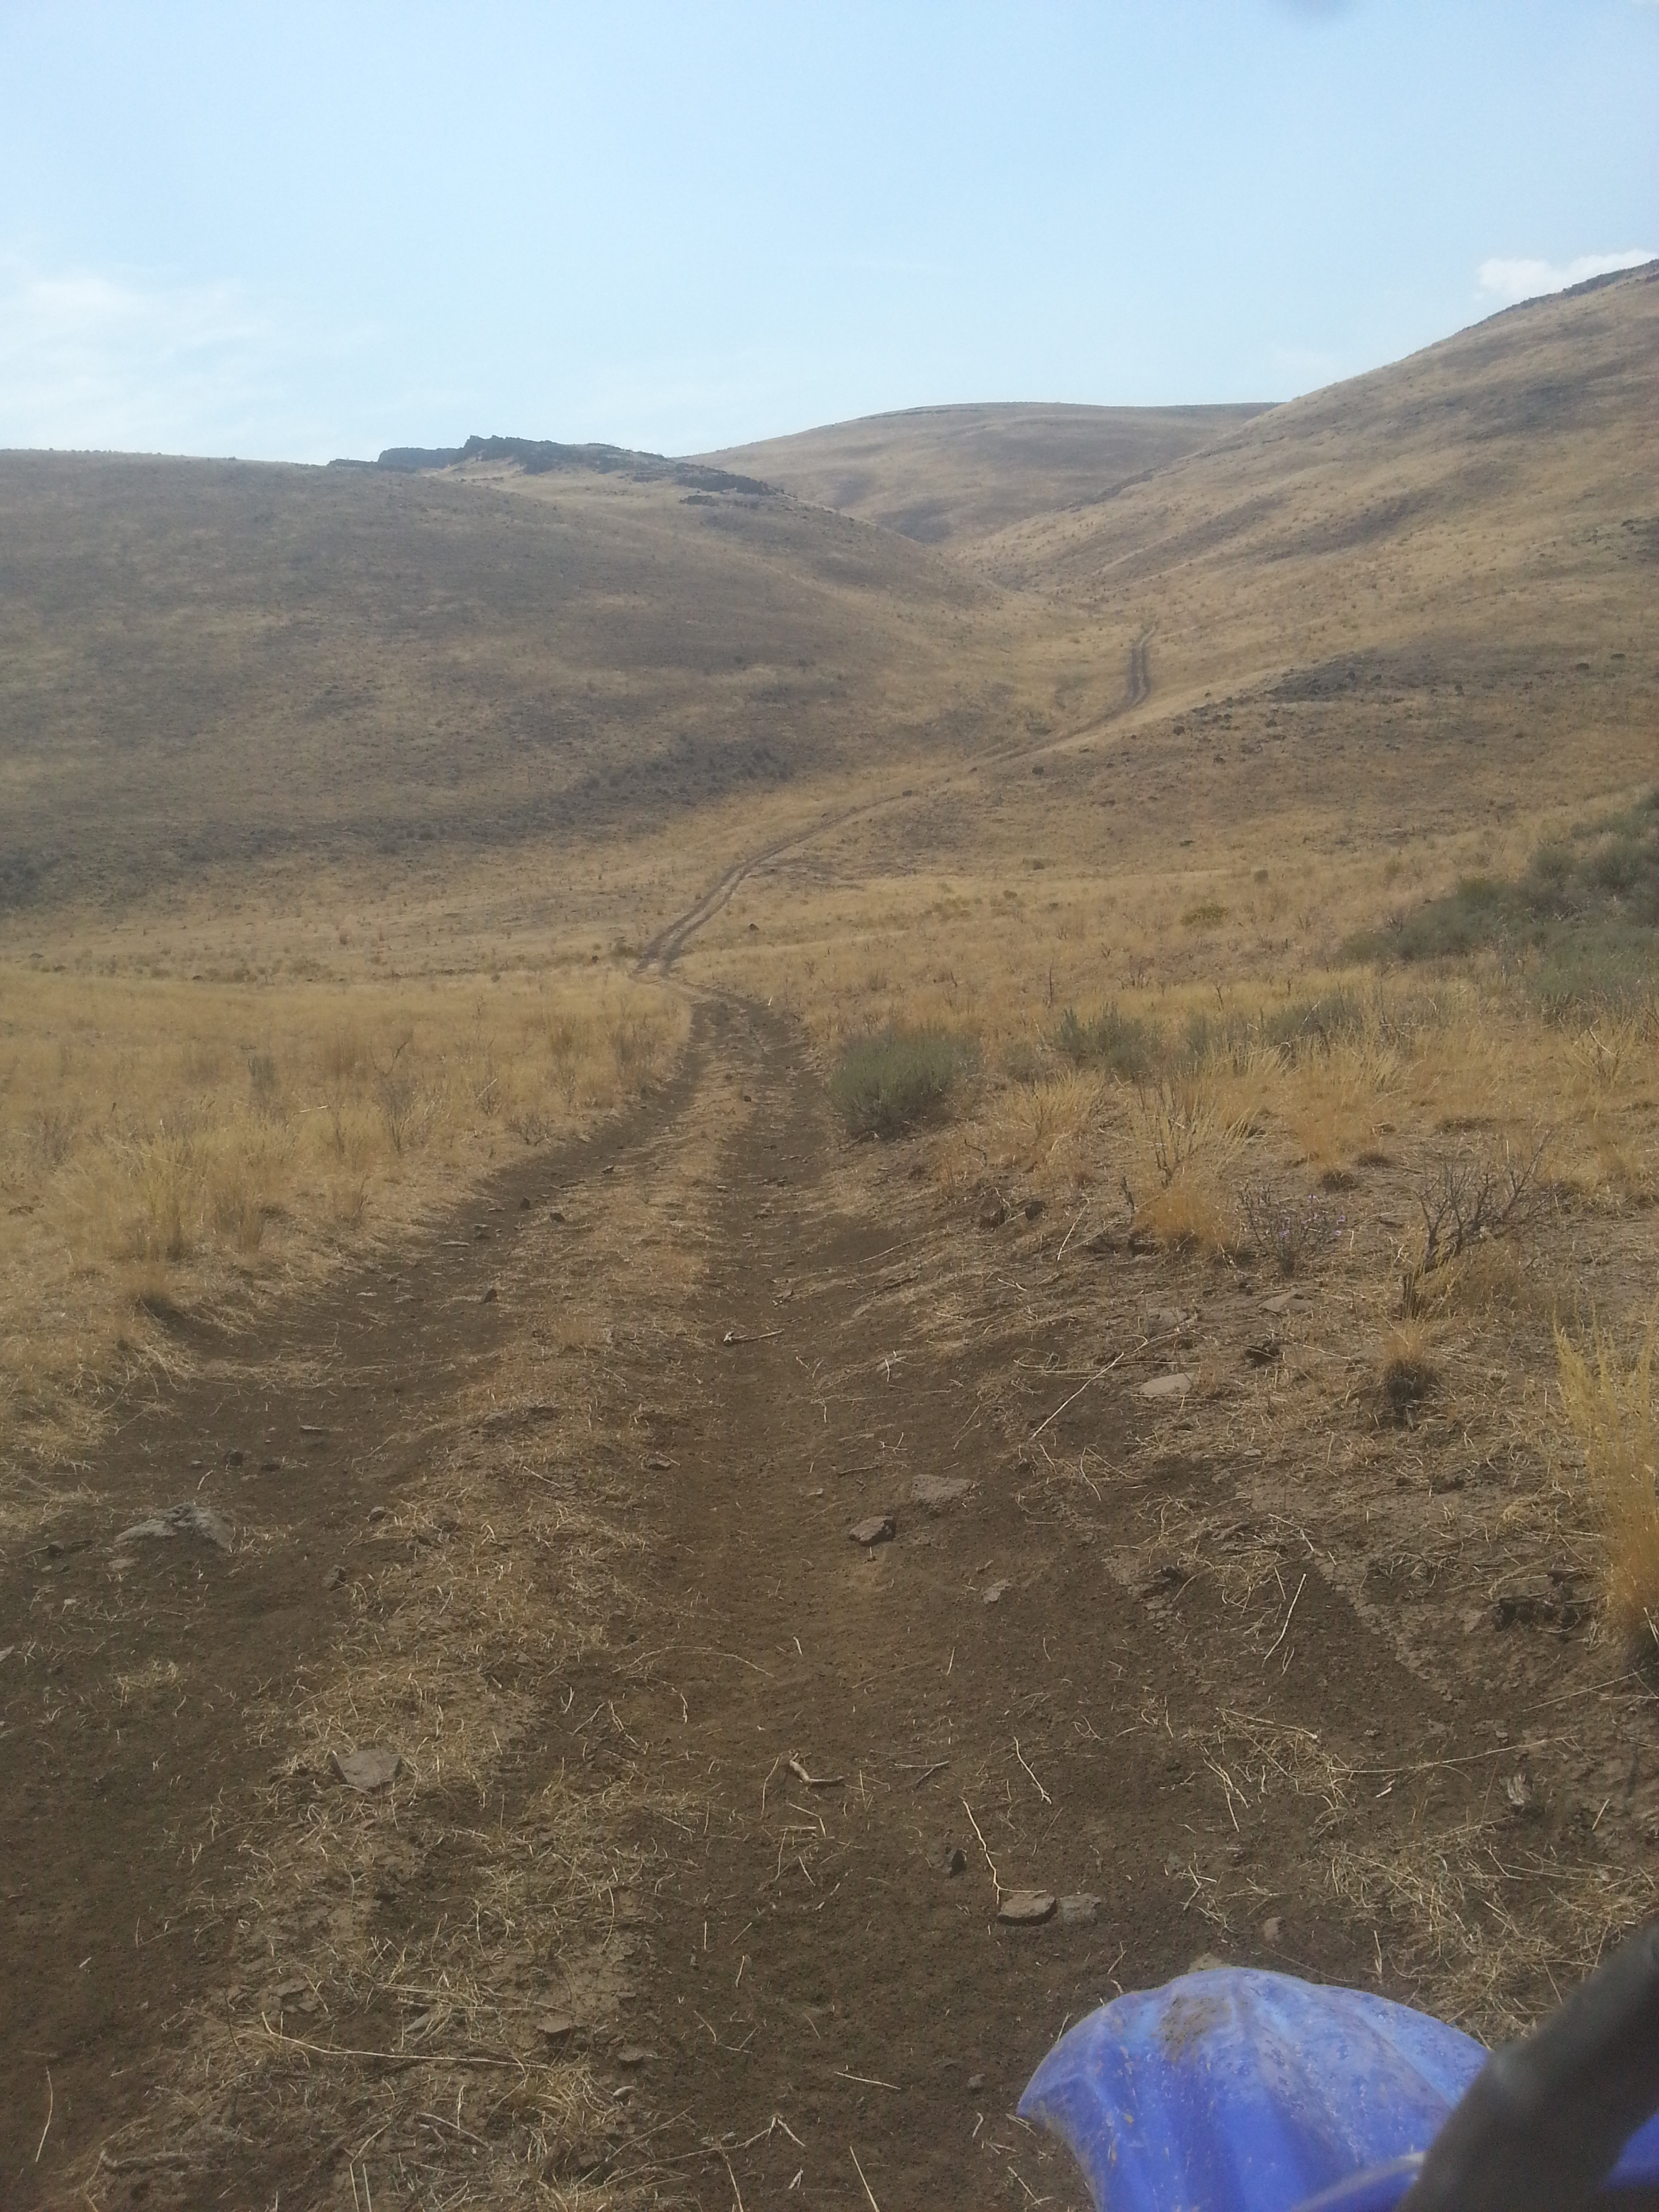 hard to tell, but steep downhill